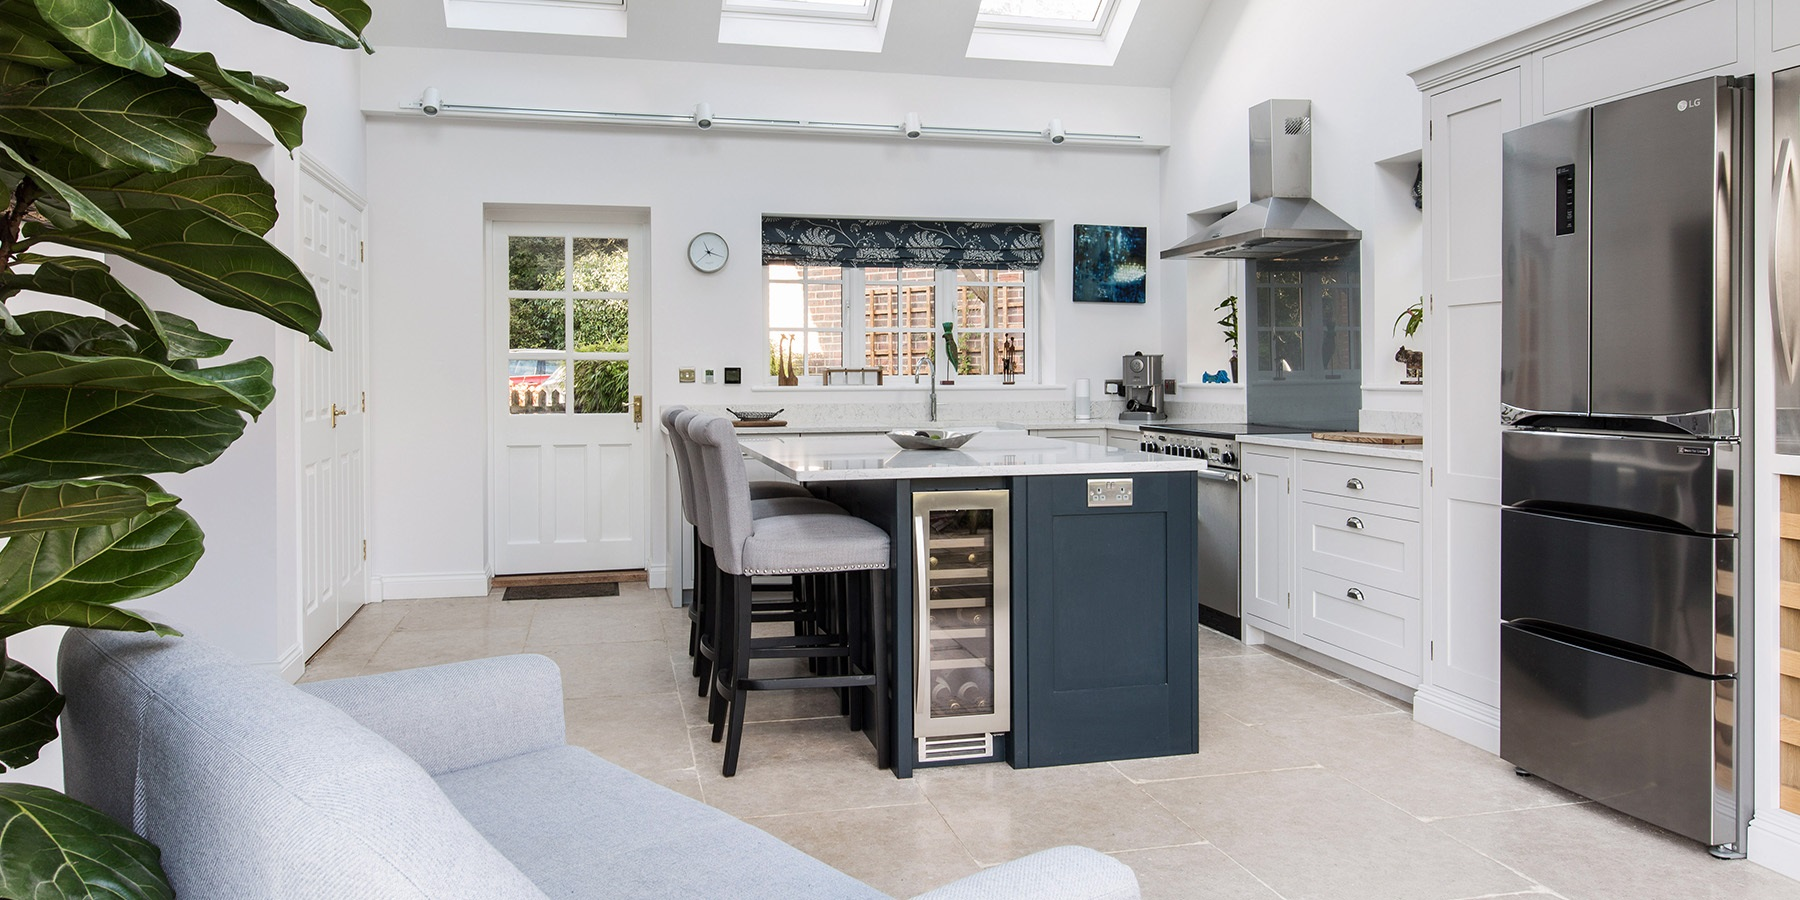 Bespoke Luxury Handmade Kitchen - Burlanes bespoke Hoyden kitchen perfect for entertaining guests, with central kitchen island and wine coolers.